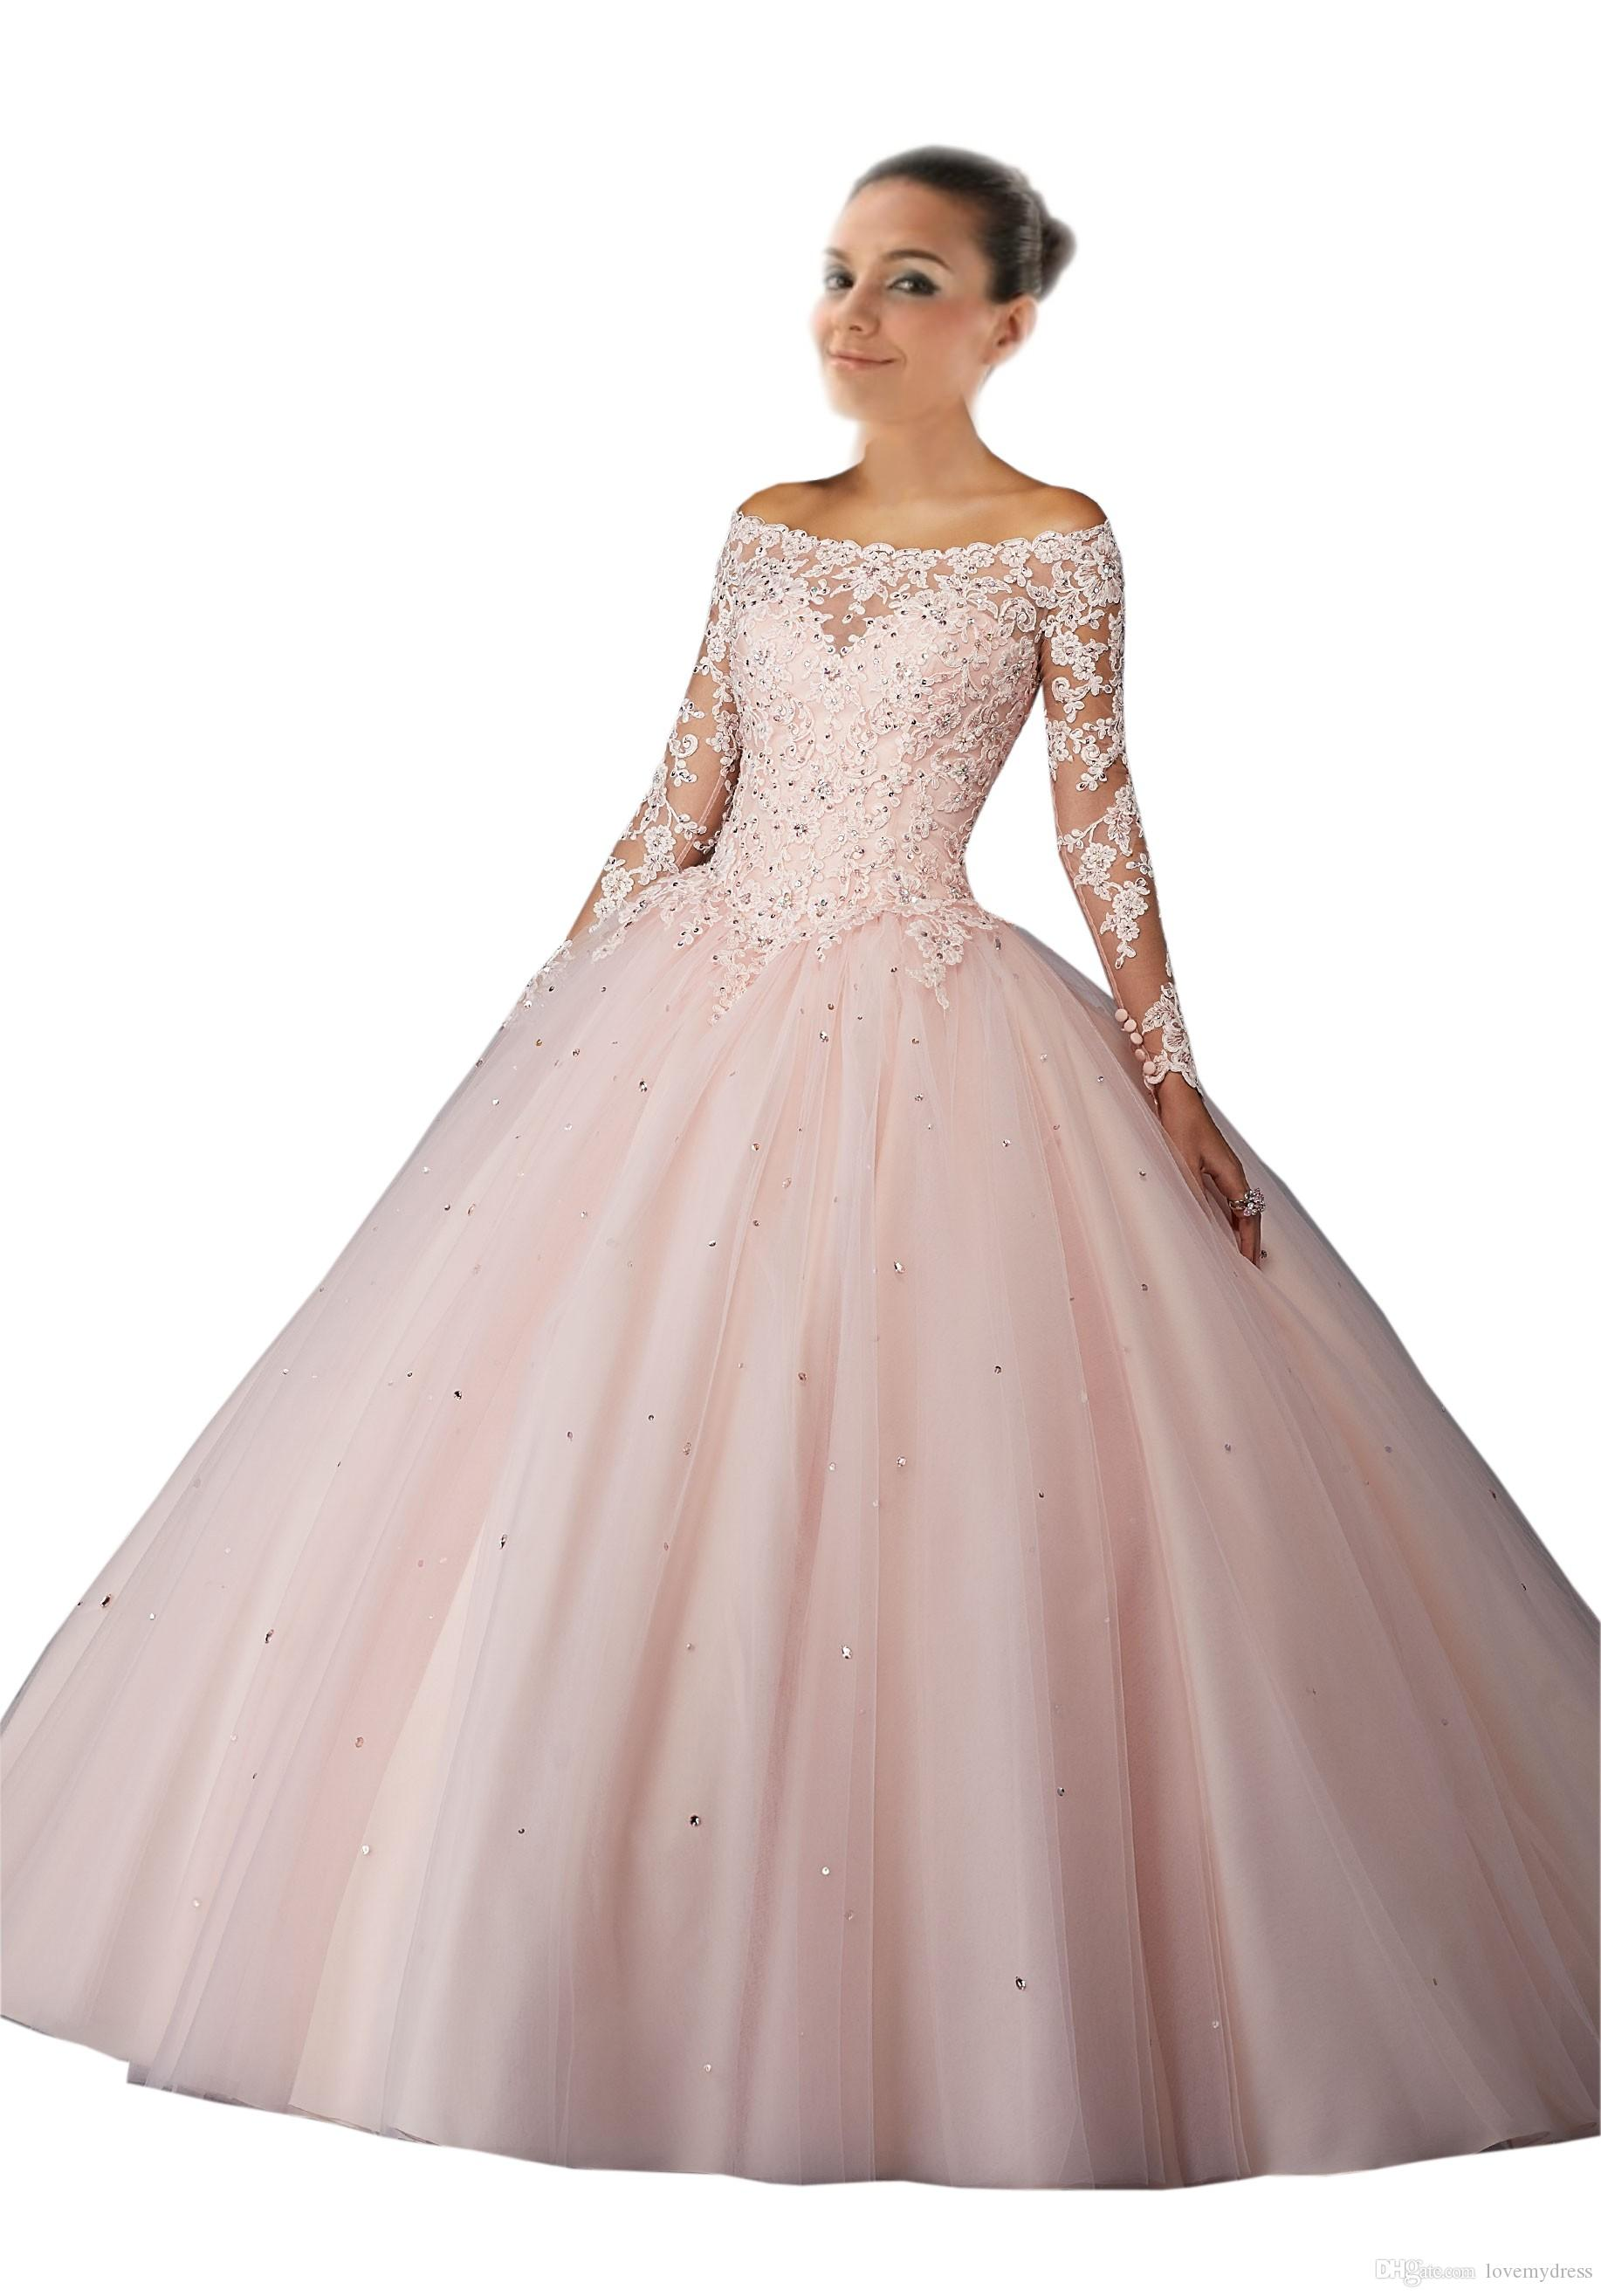 ca89167ac Vestidos 15 Anos Quinceanera Dresses 2018 Off The Shoulder With Long  Sleeves Lace Applique Ball Gowns Sweet 16 Dresses Light Pink Blush Ball  Gowns For Sale ...